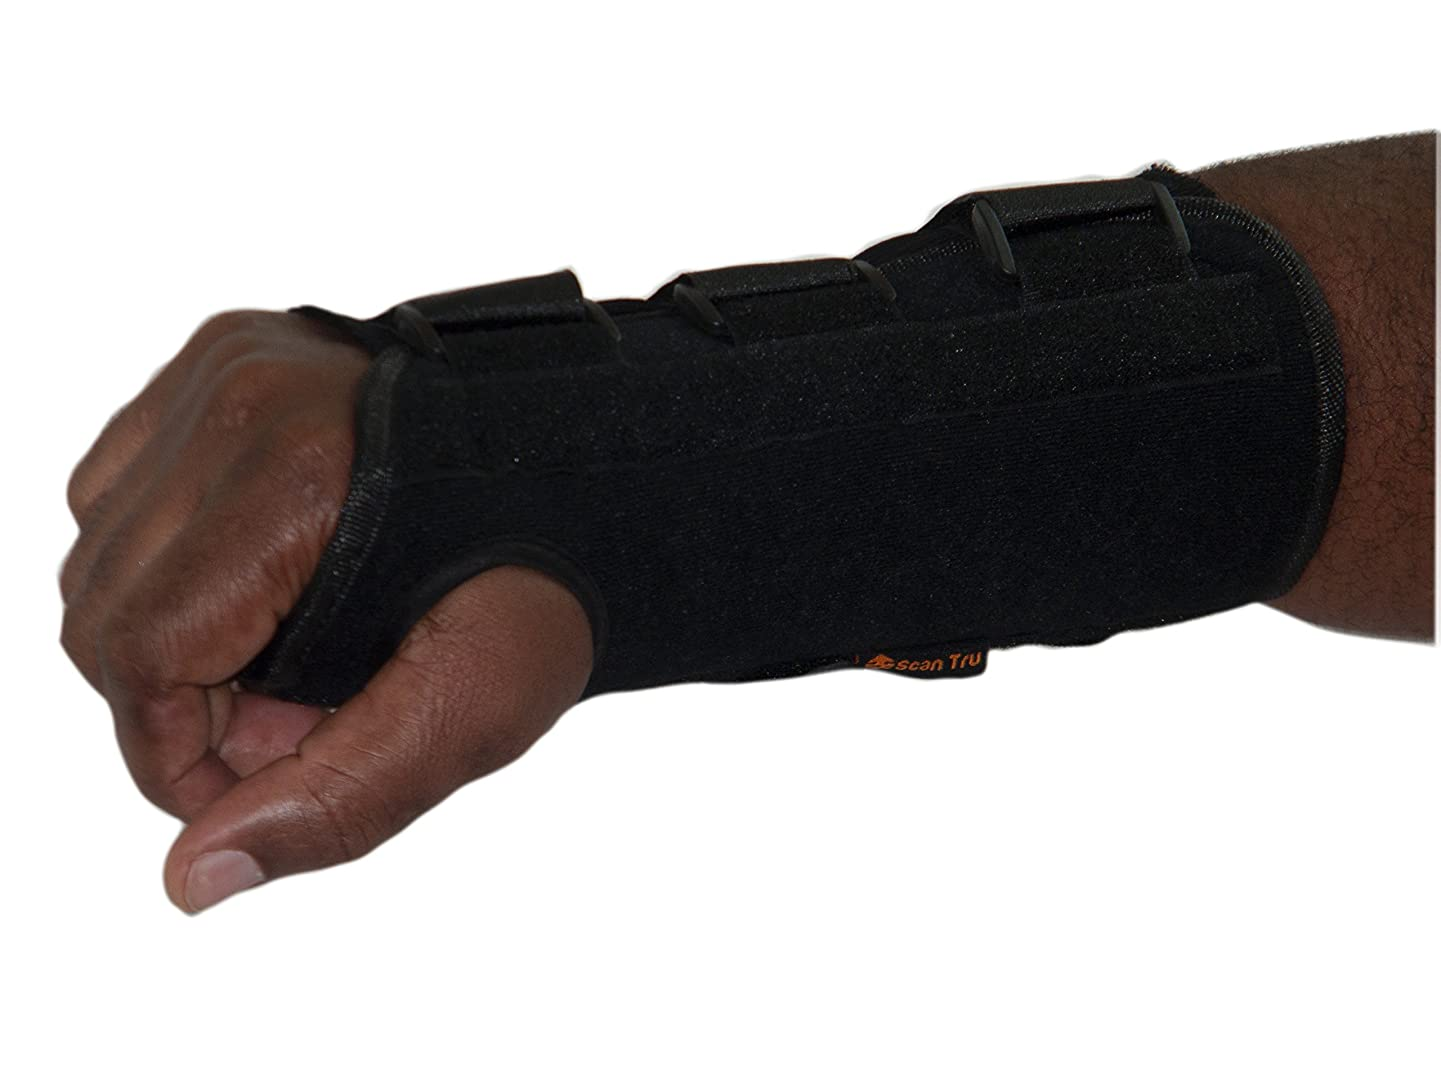 Scan Tru Carpal Tunnel Adjustable Wrist Brace Right Or Left for Women Men Day Or Nighttime – Breathable, Thin with Metal Splint, Flexible Washable for Work Or Gaming Size (Long Large R)